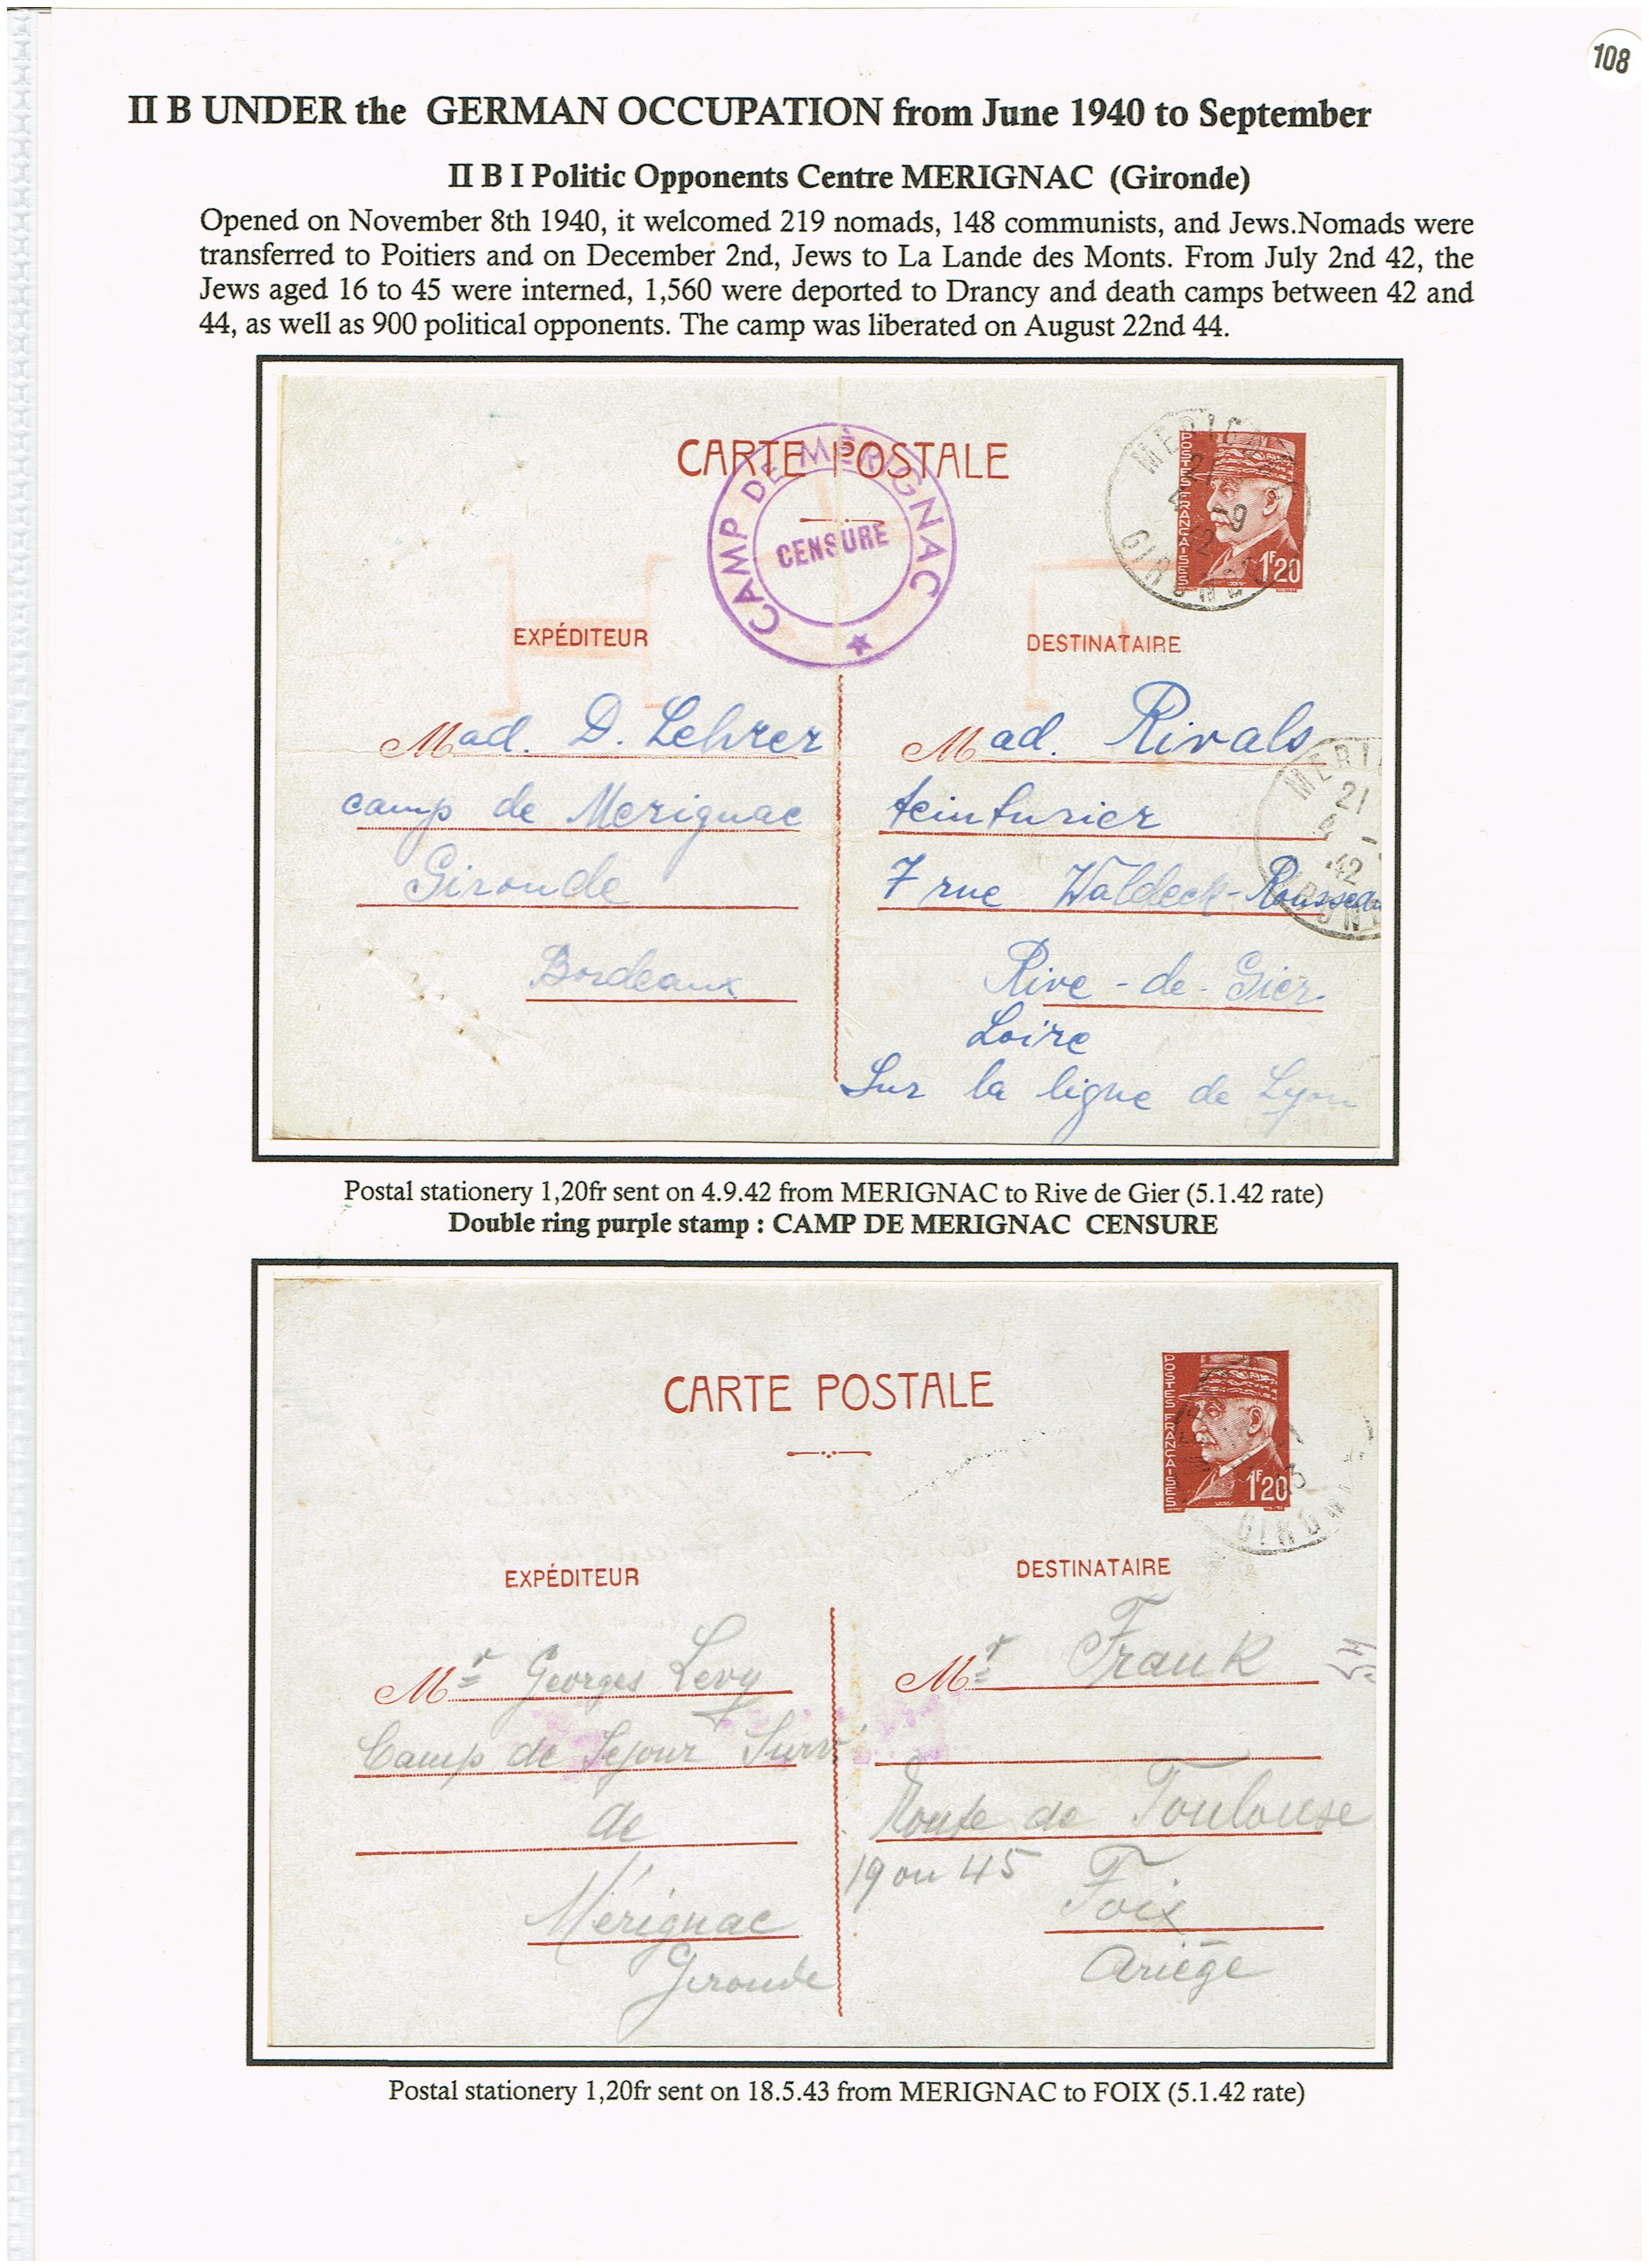 Les courriers des camps d'internement en France (1939 - 1945) p. 108